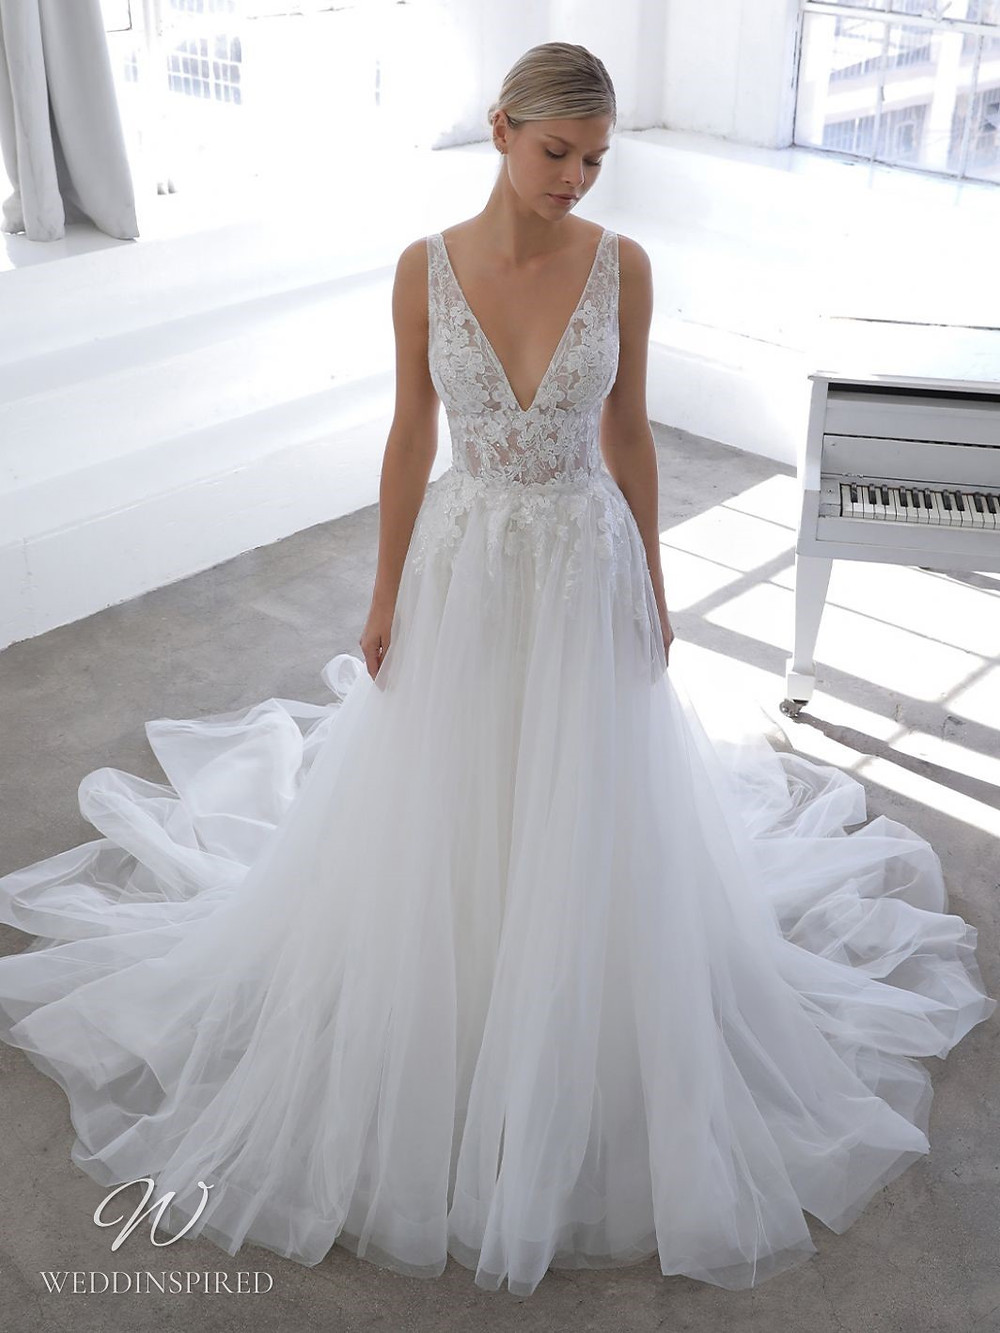 A Blue by Enzoani 2021 lace and tulle A-line wedding dress with straps and a v neck